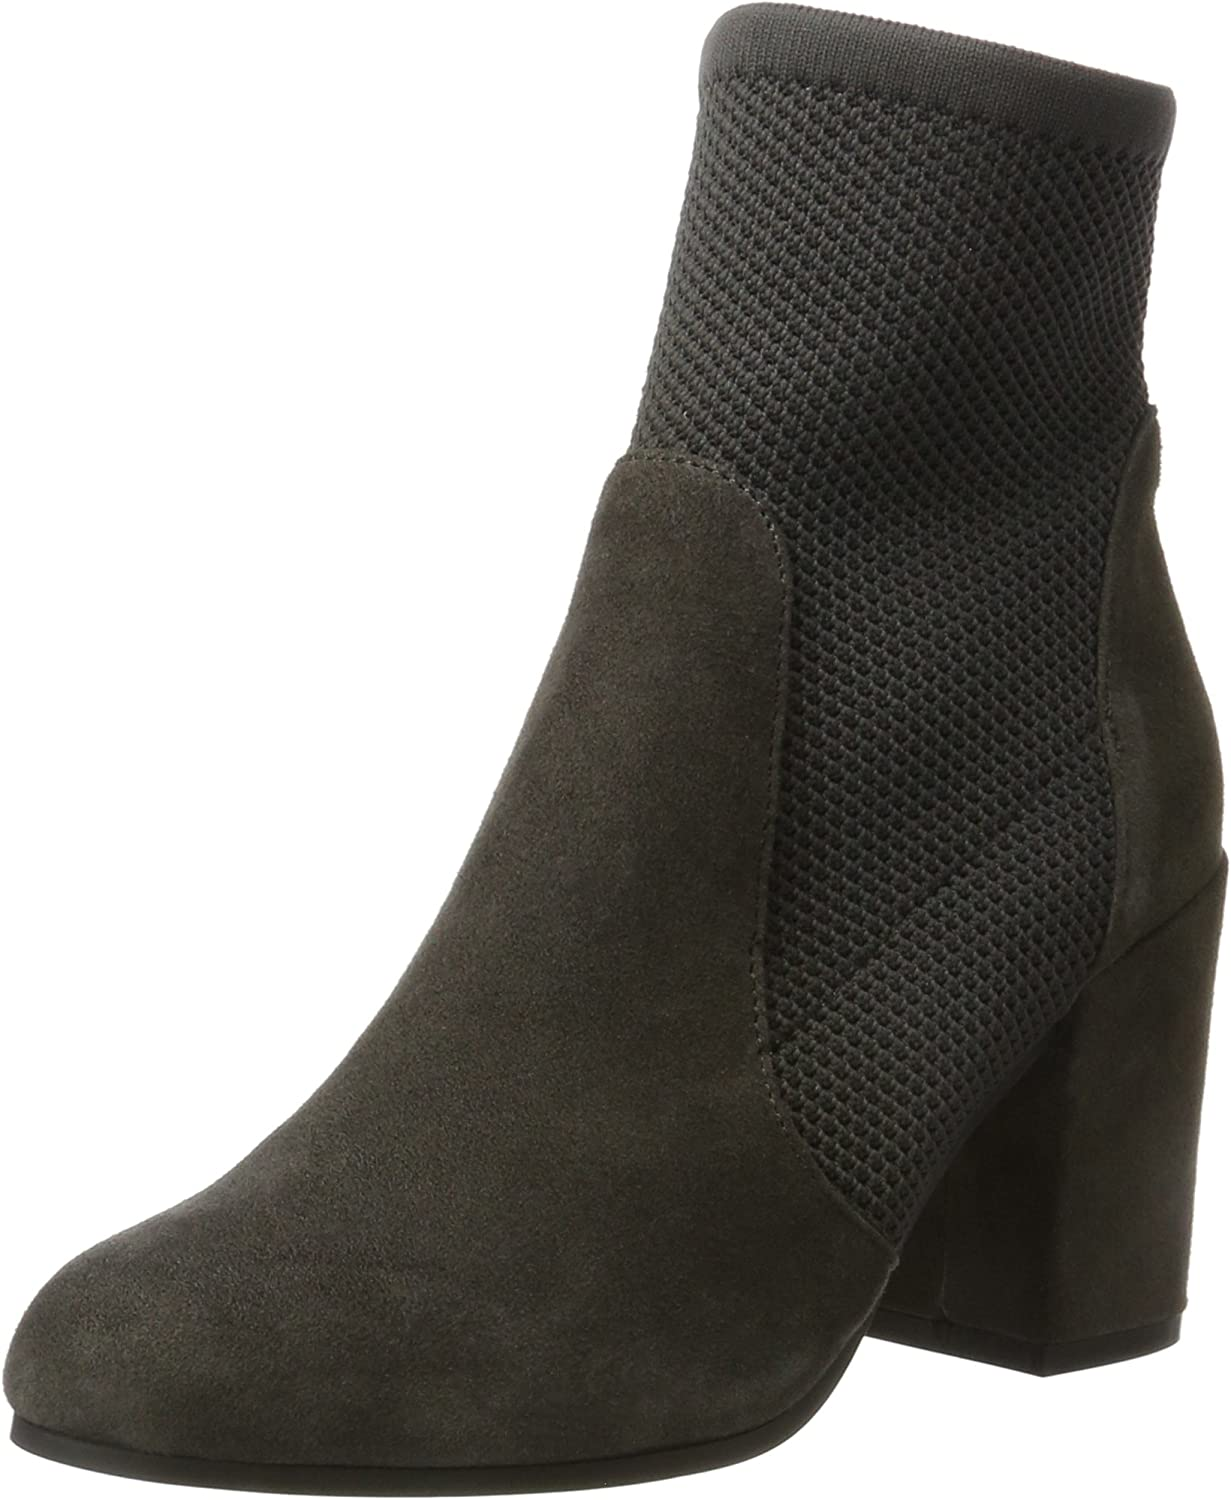 Buffalo Damen 417-0371 Kid Suede Stiefel